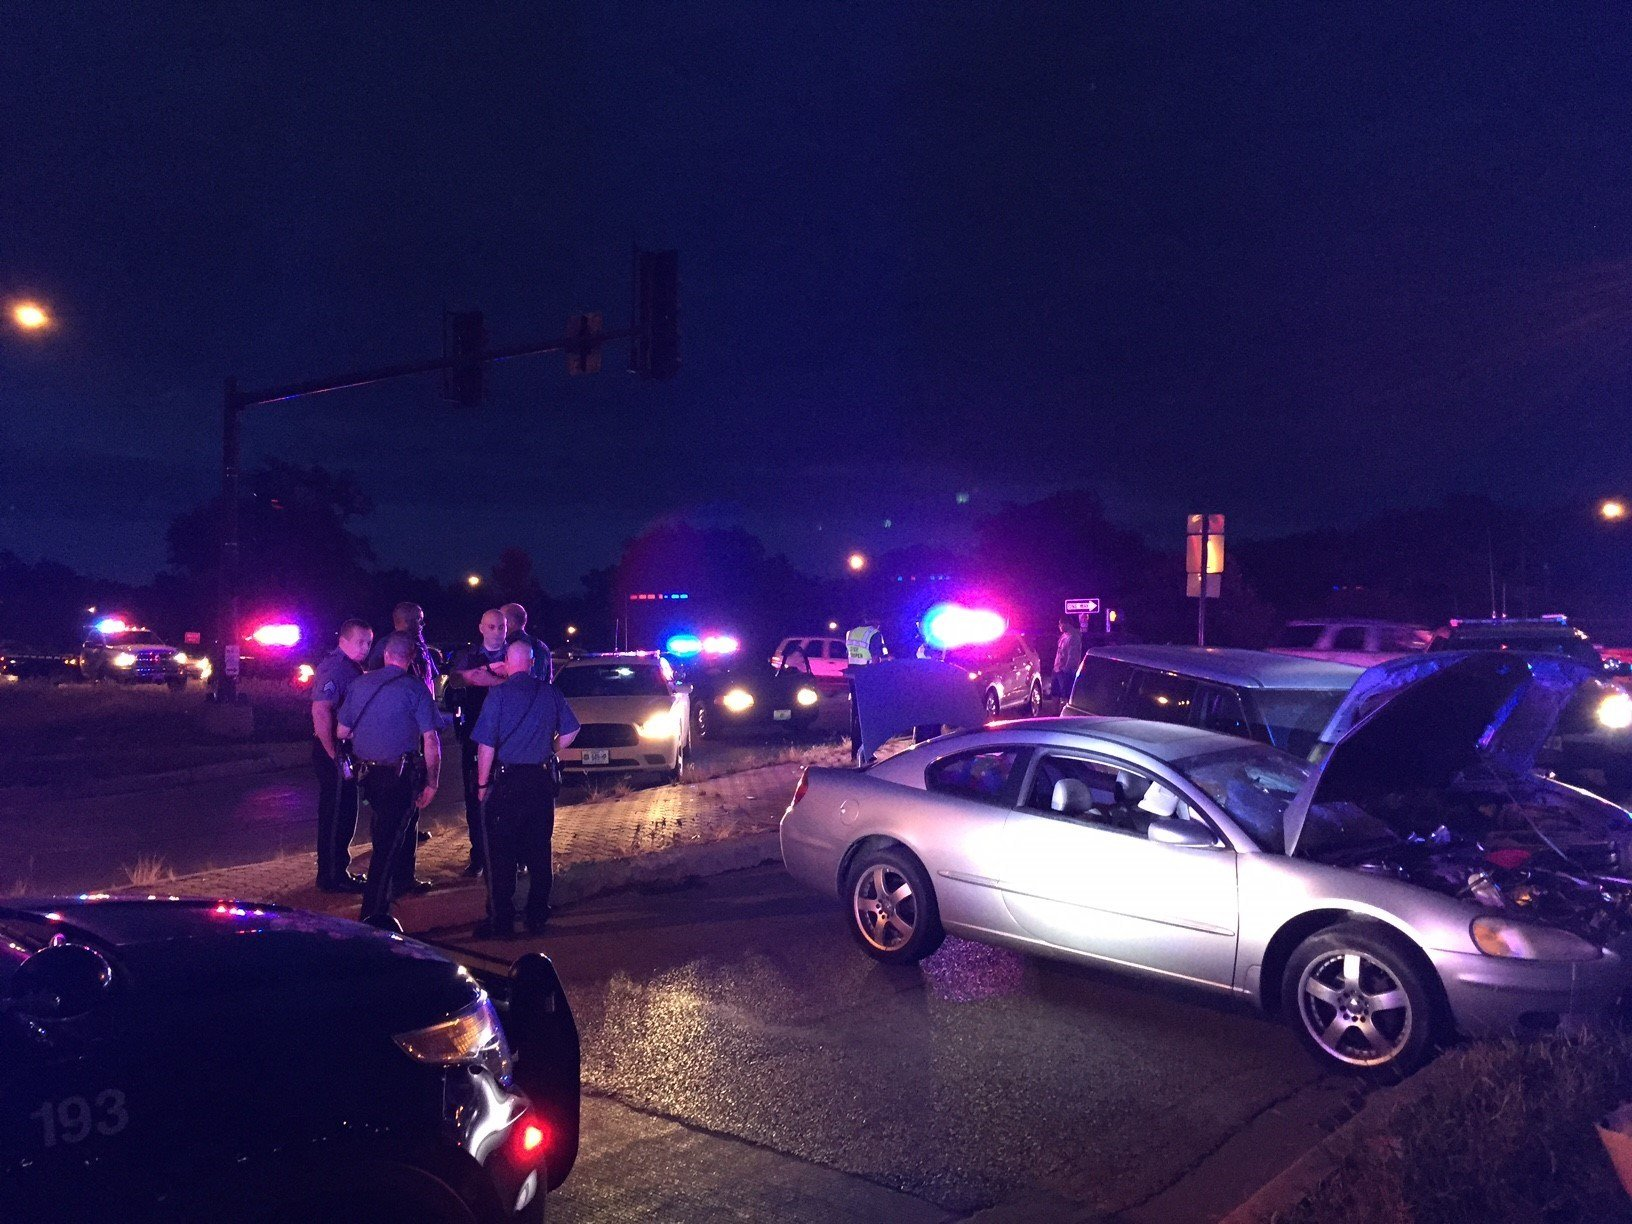 A car chase ended in a crash at US 71 and 59th St. in KCMO. (Dwain Crispell/KCTV5)